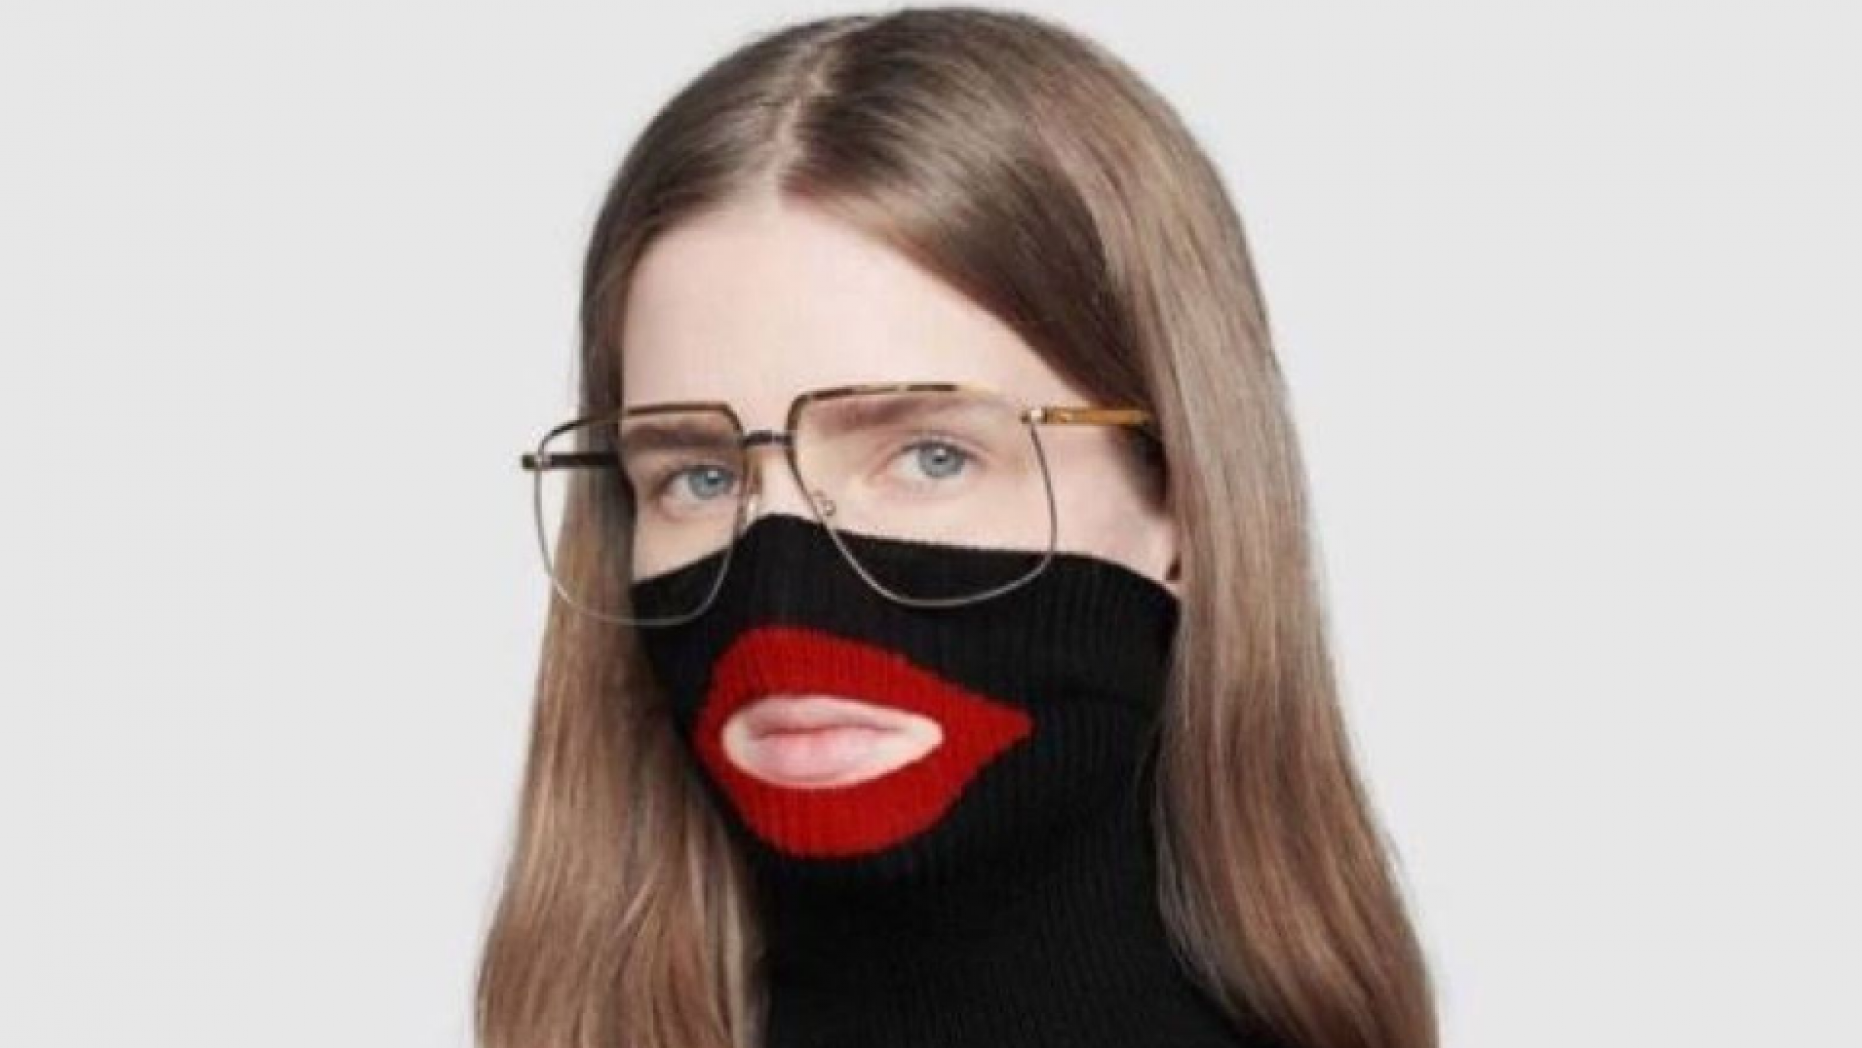 Gucci apologized and pulled a sweater likened to blackface.